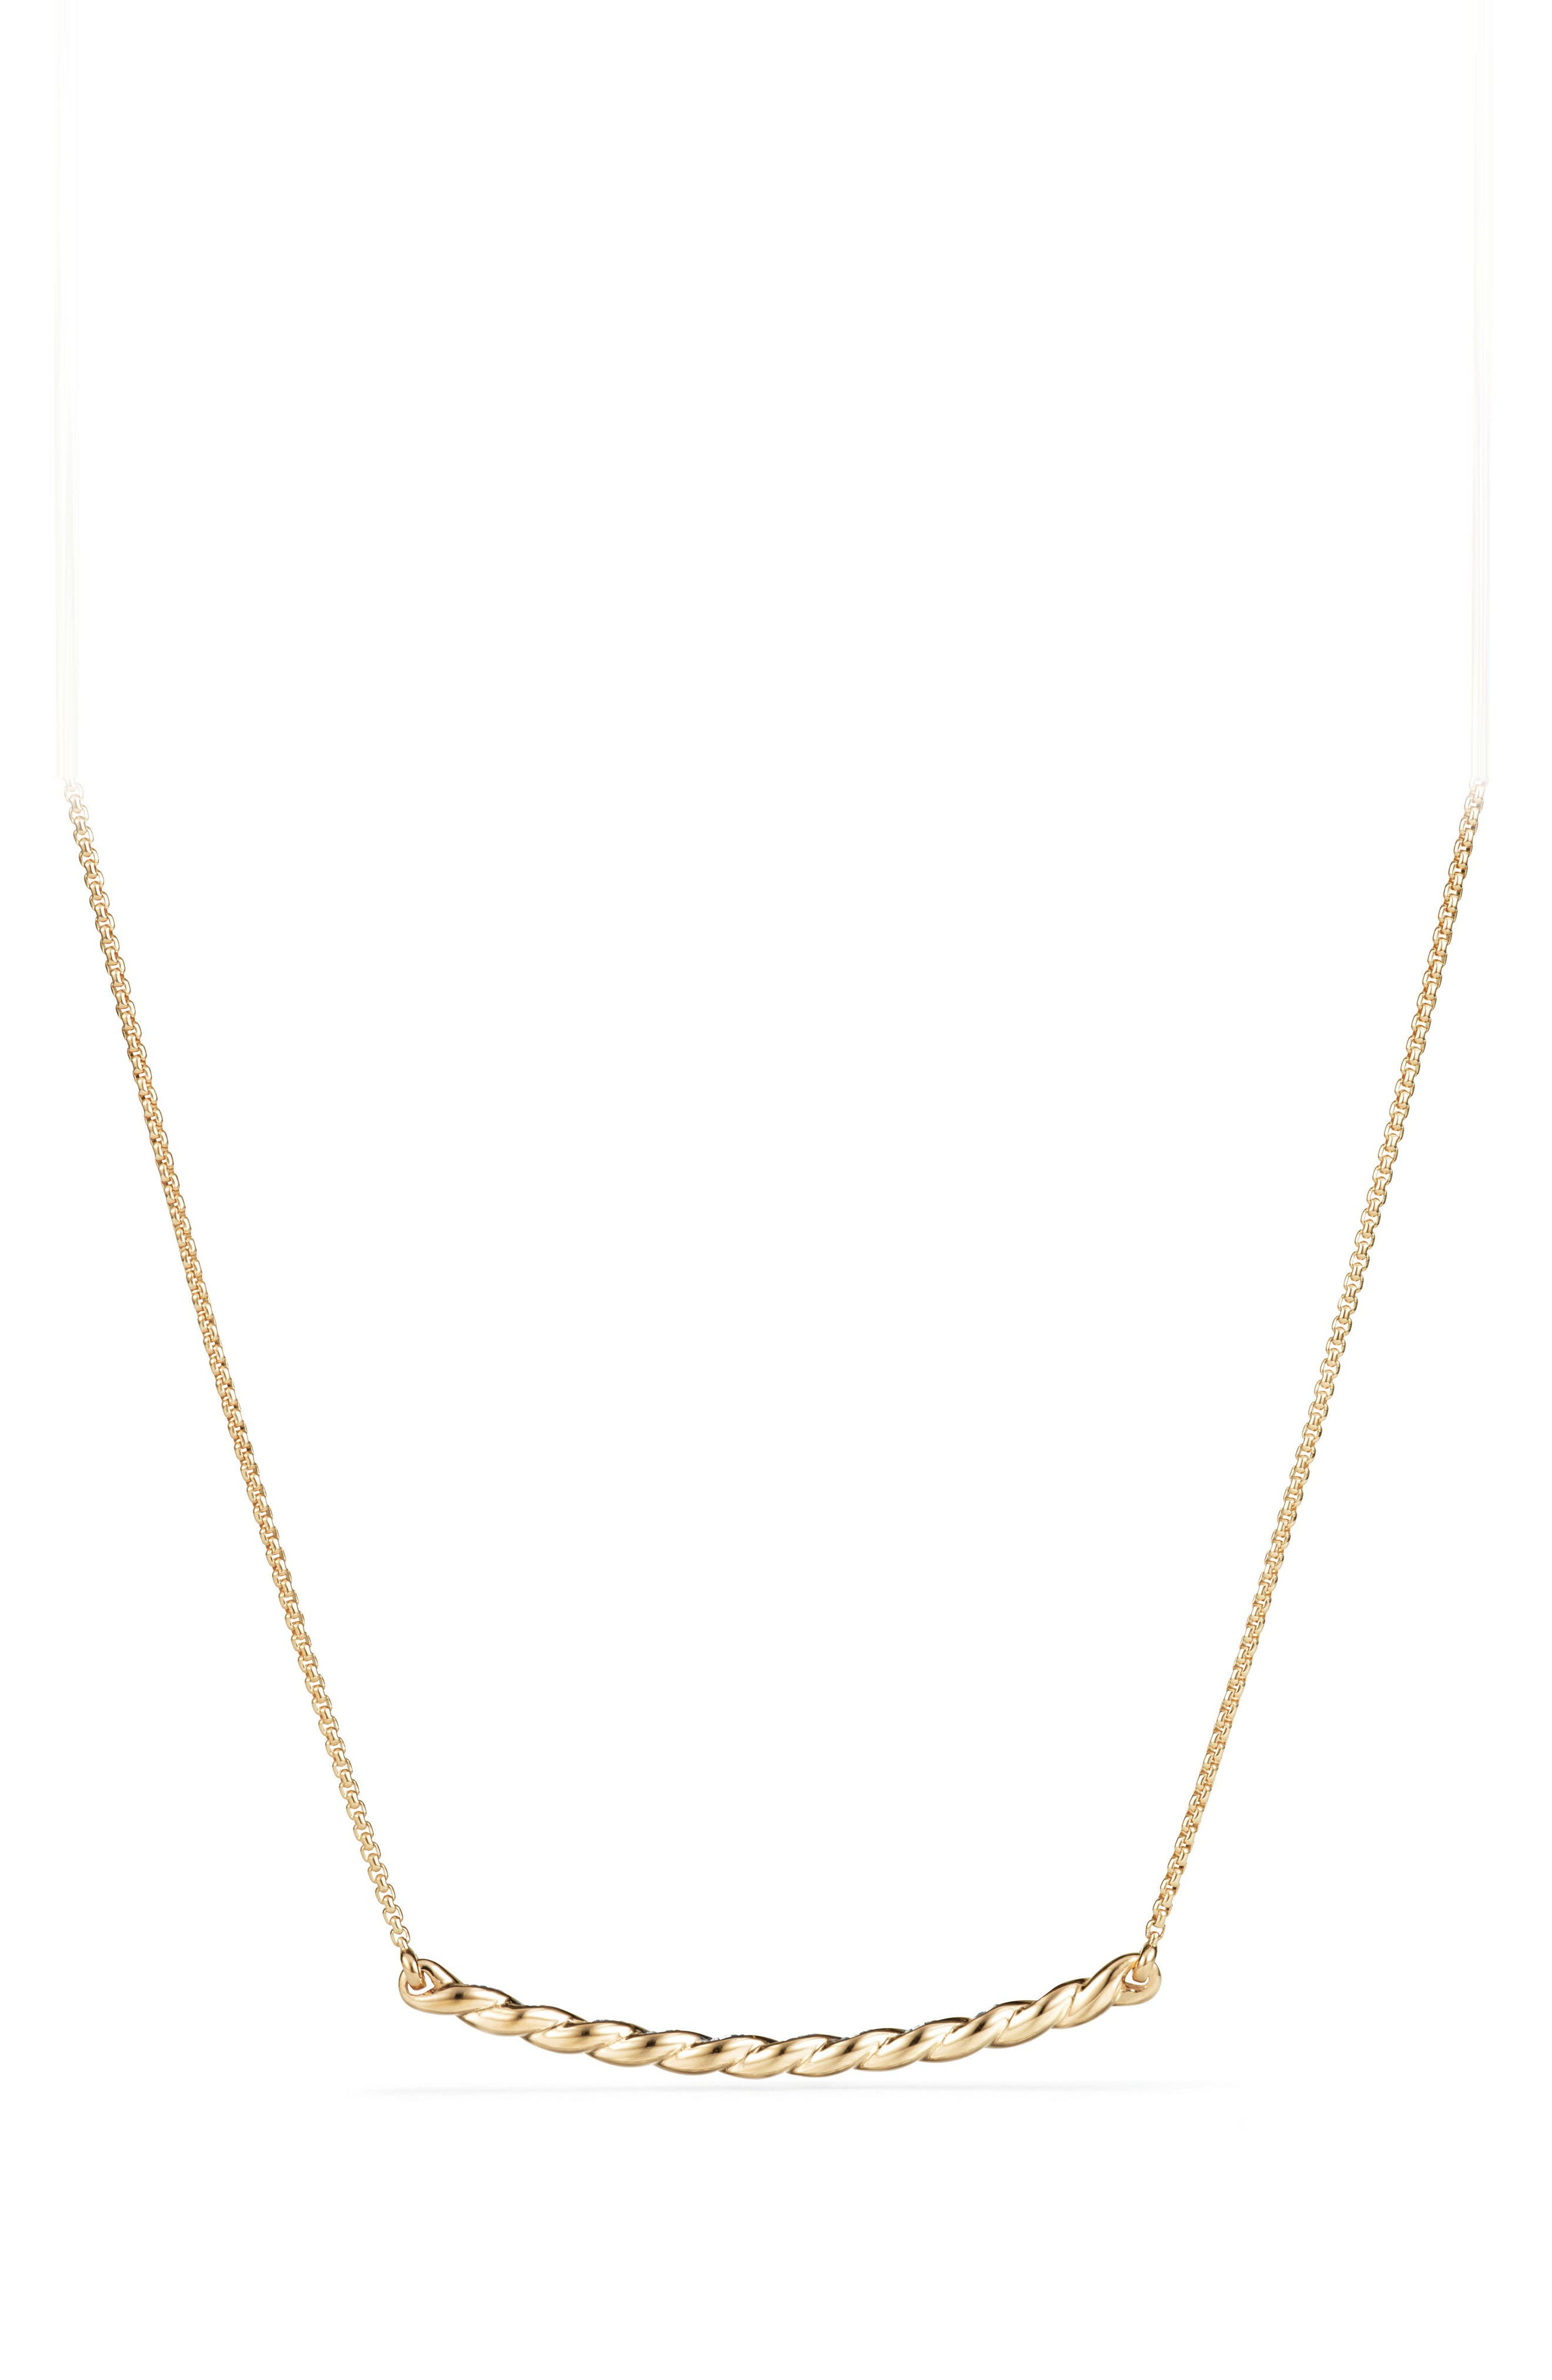 Paveflex Station Necklace with Diamonds in 18K Gold,                             Alternate thumbnail 2, color,                             YELLOW GOLD/ DIAMOND